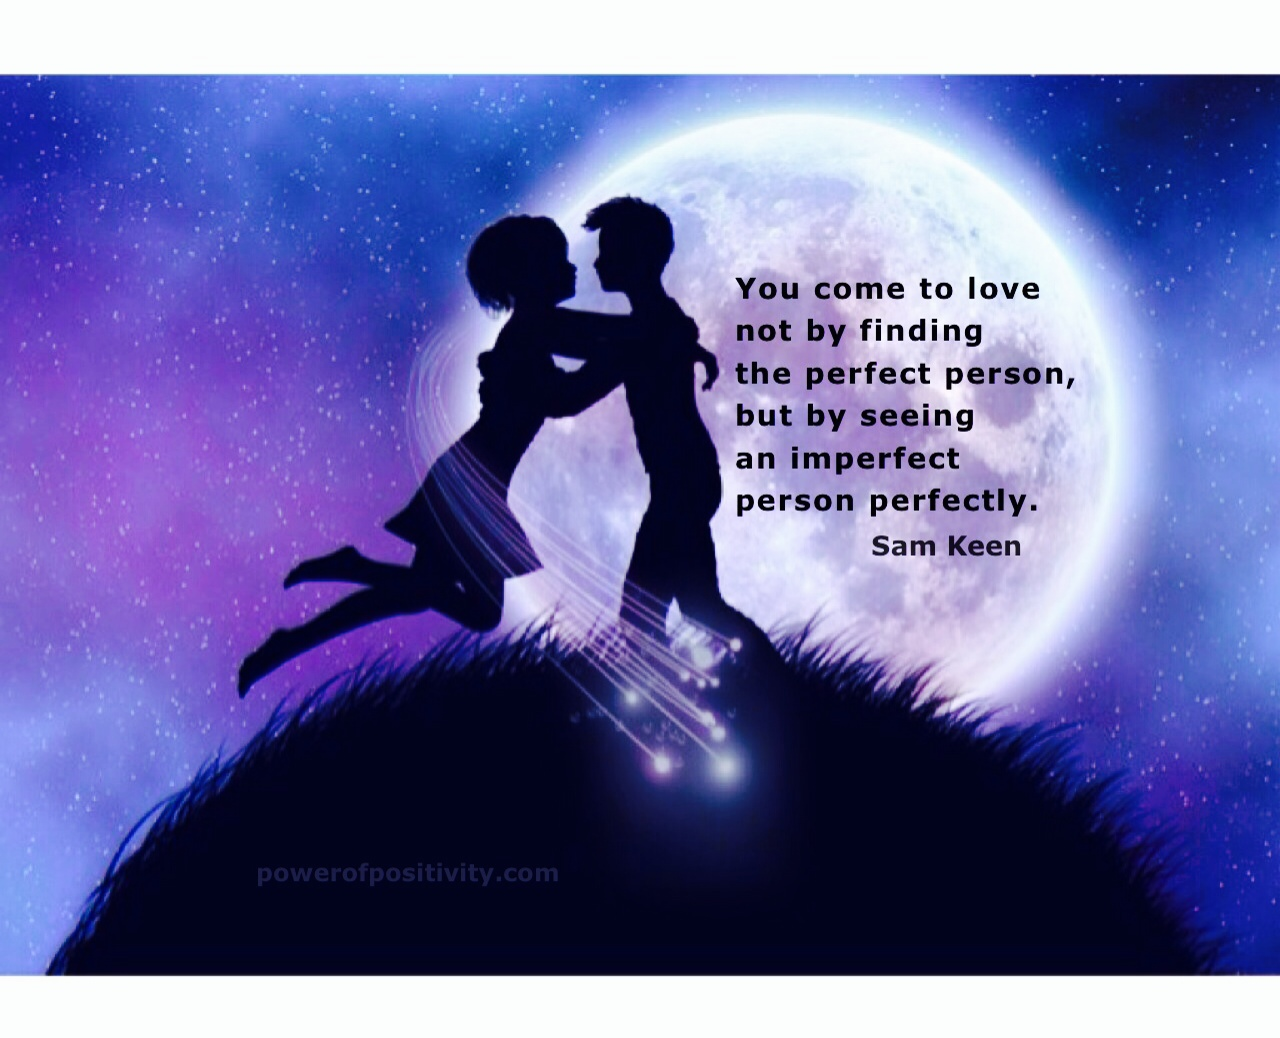 Imperfect Love Quotes 21 Small Ways To Love Big In Your Relationships